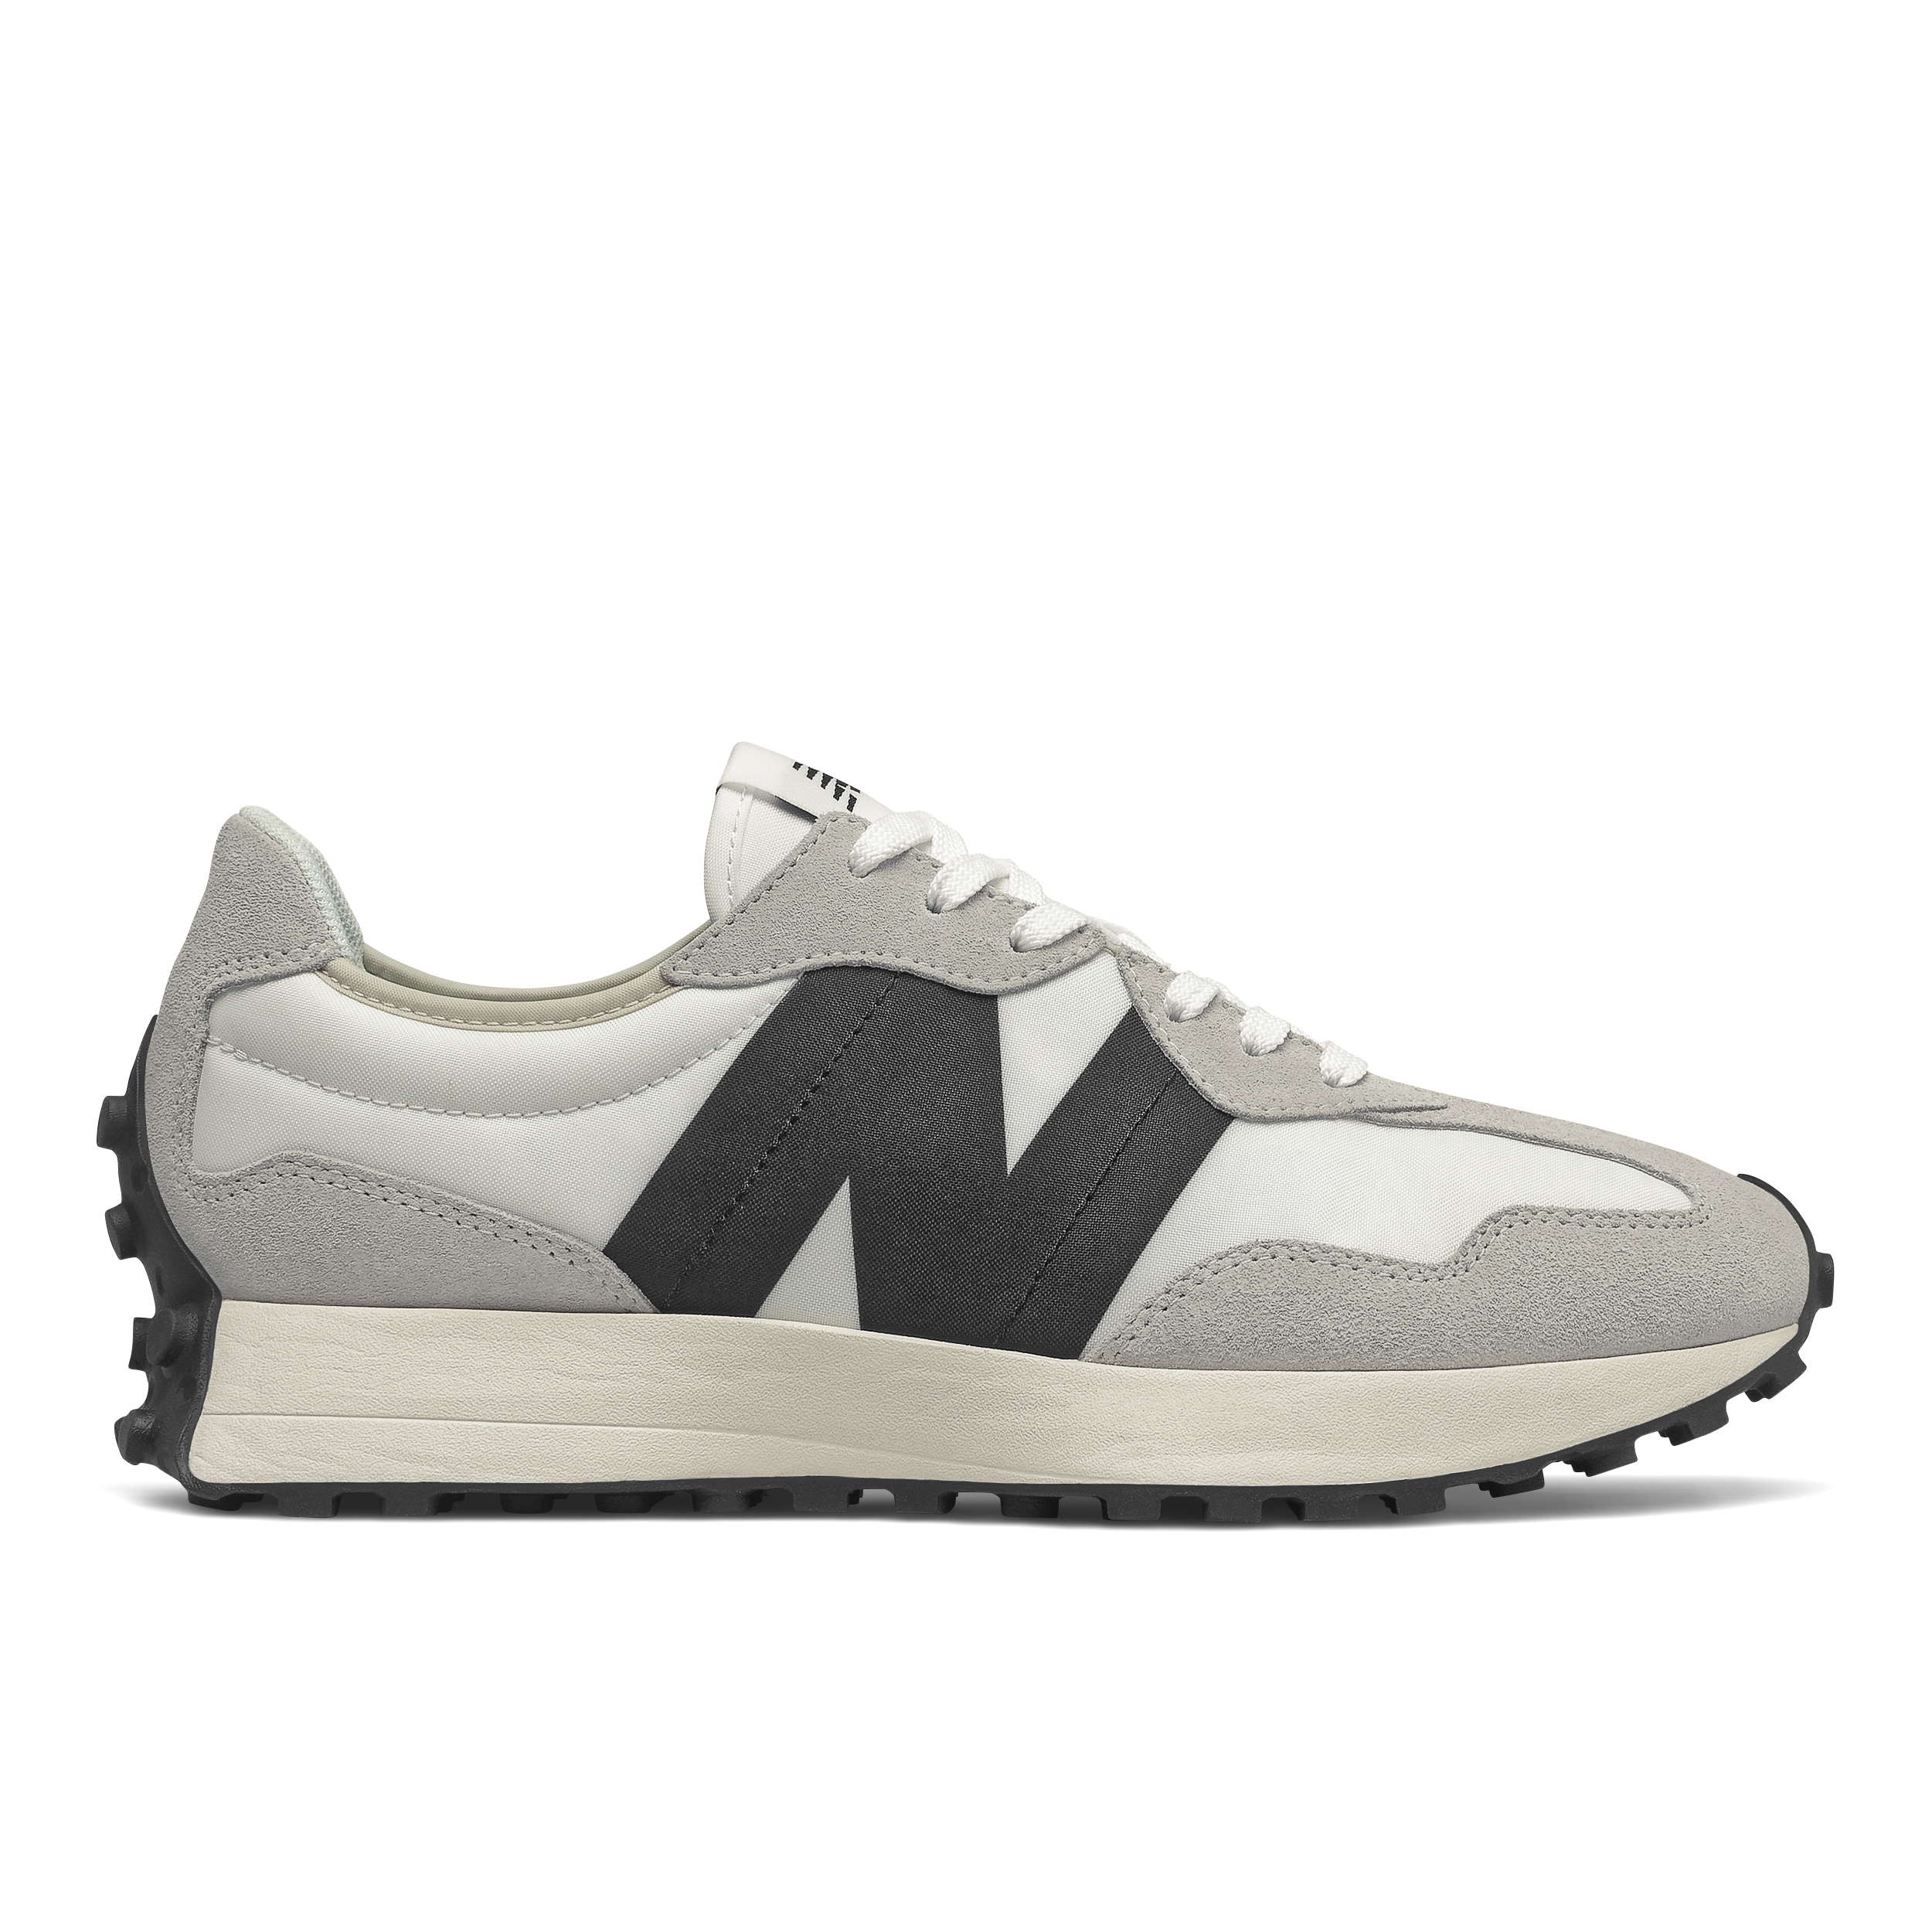 New Balance MS327FE sneakers